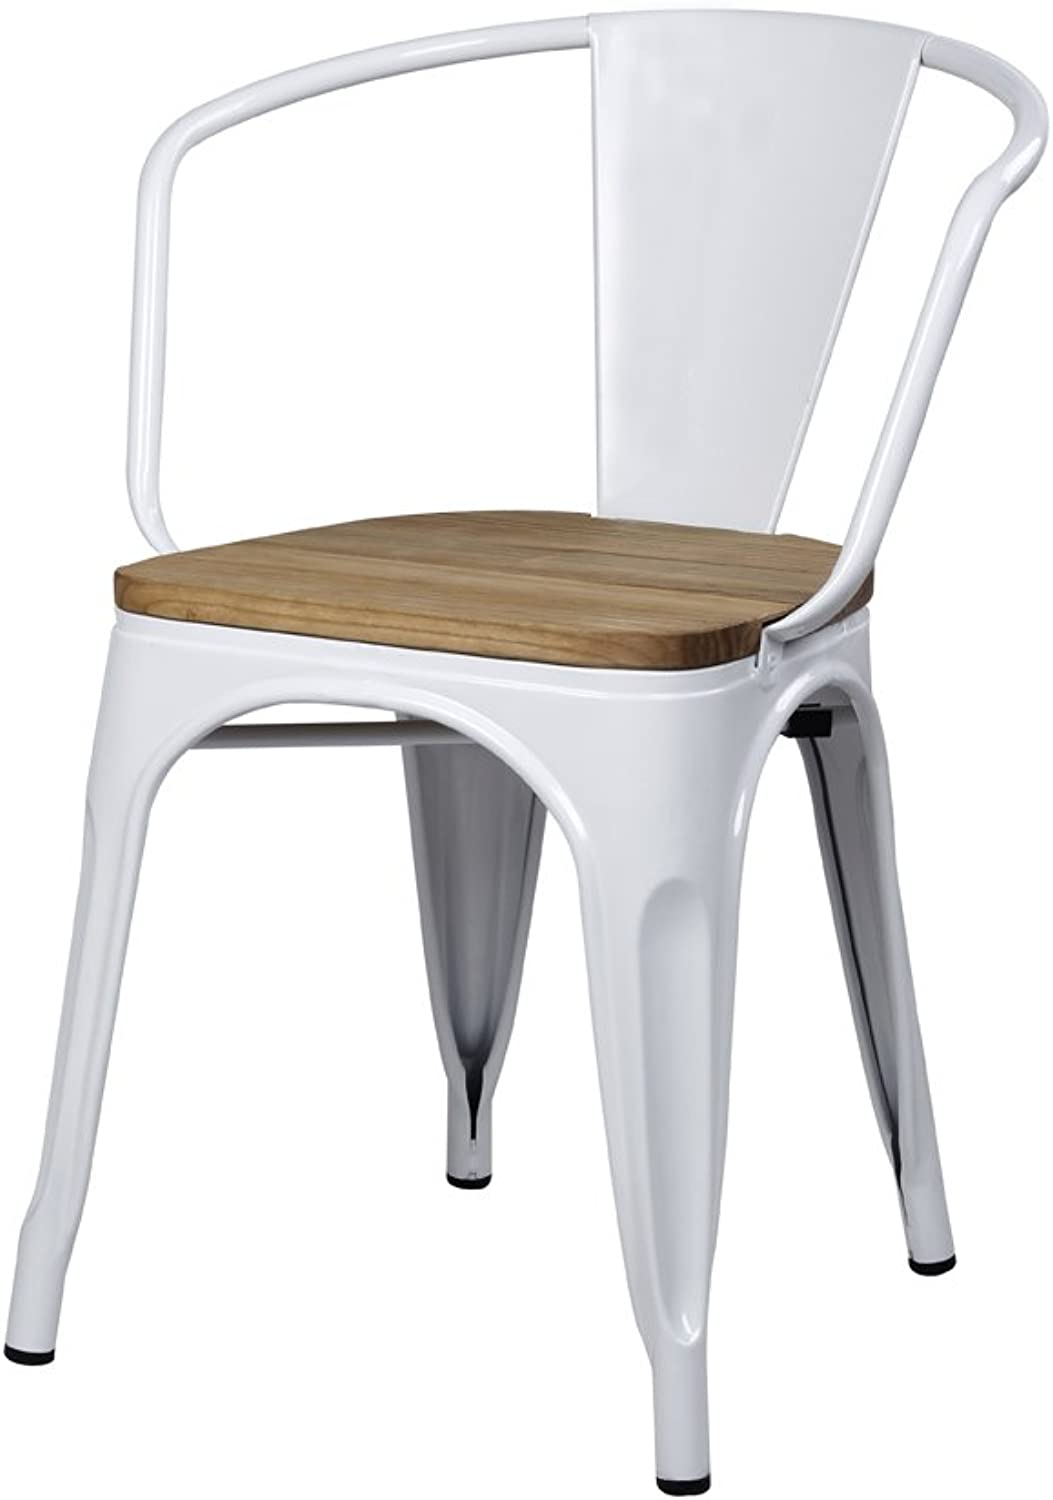 GIA AY55C-WH_Wood_1 Metal Dining Chair with Wooden seat, 1-Pack, White